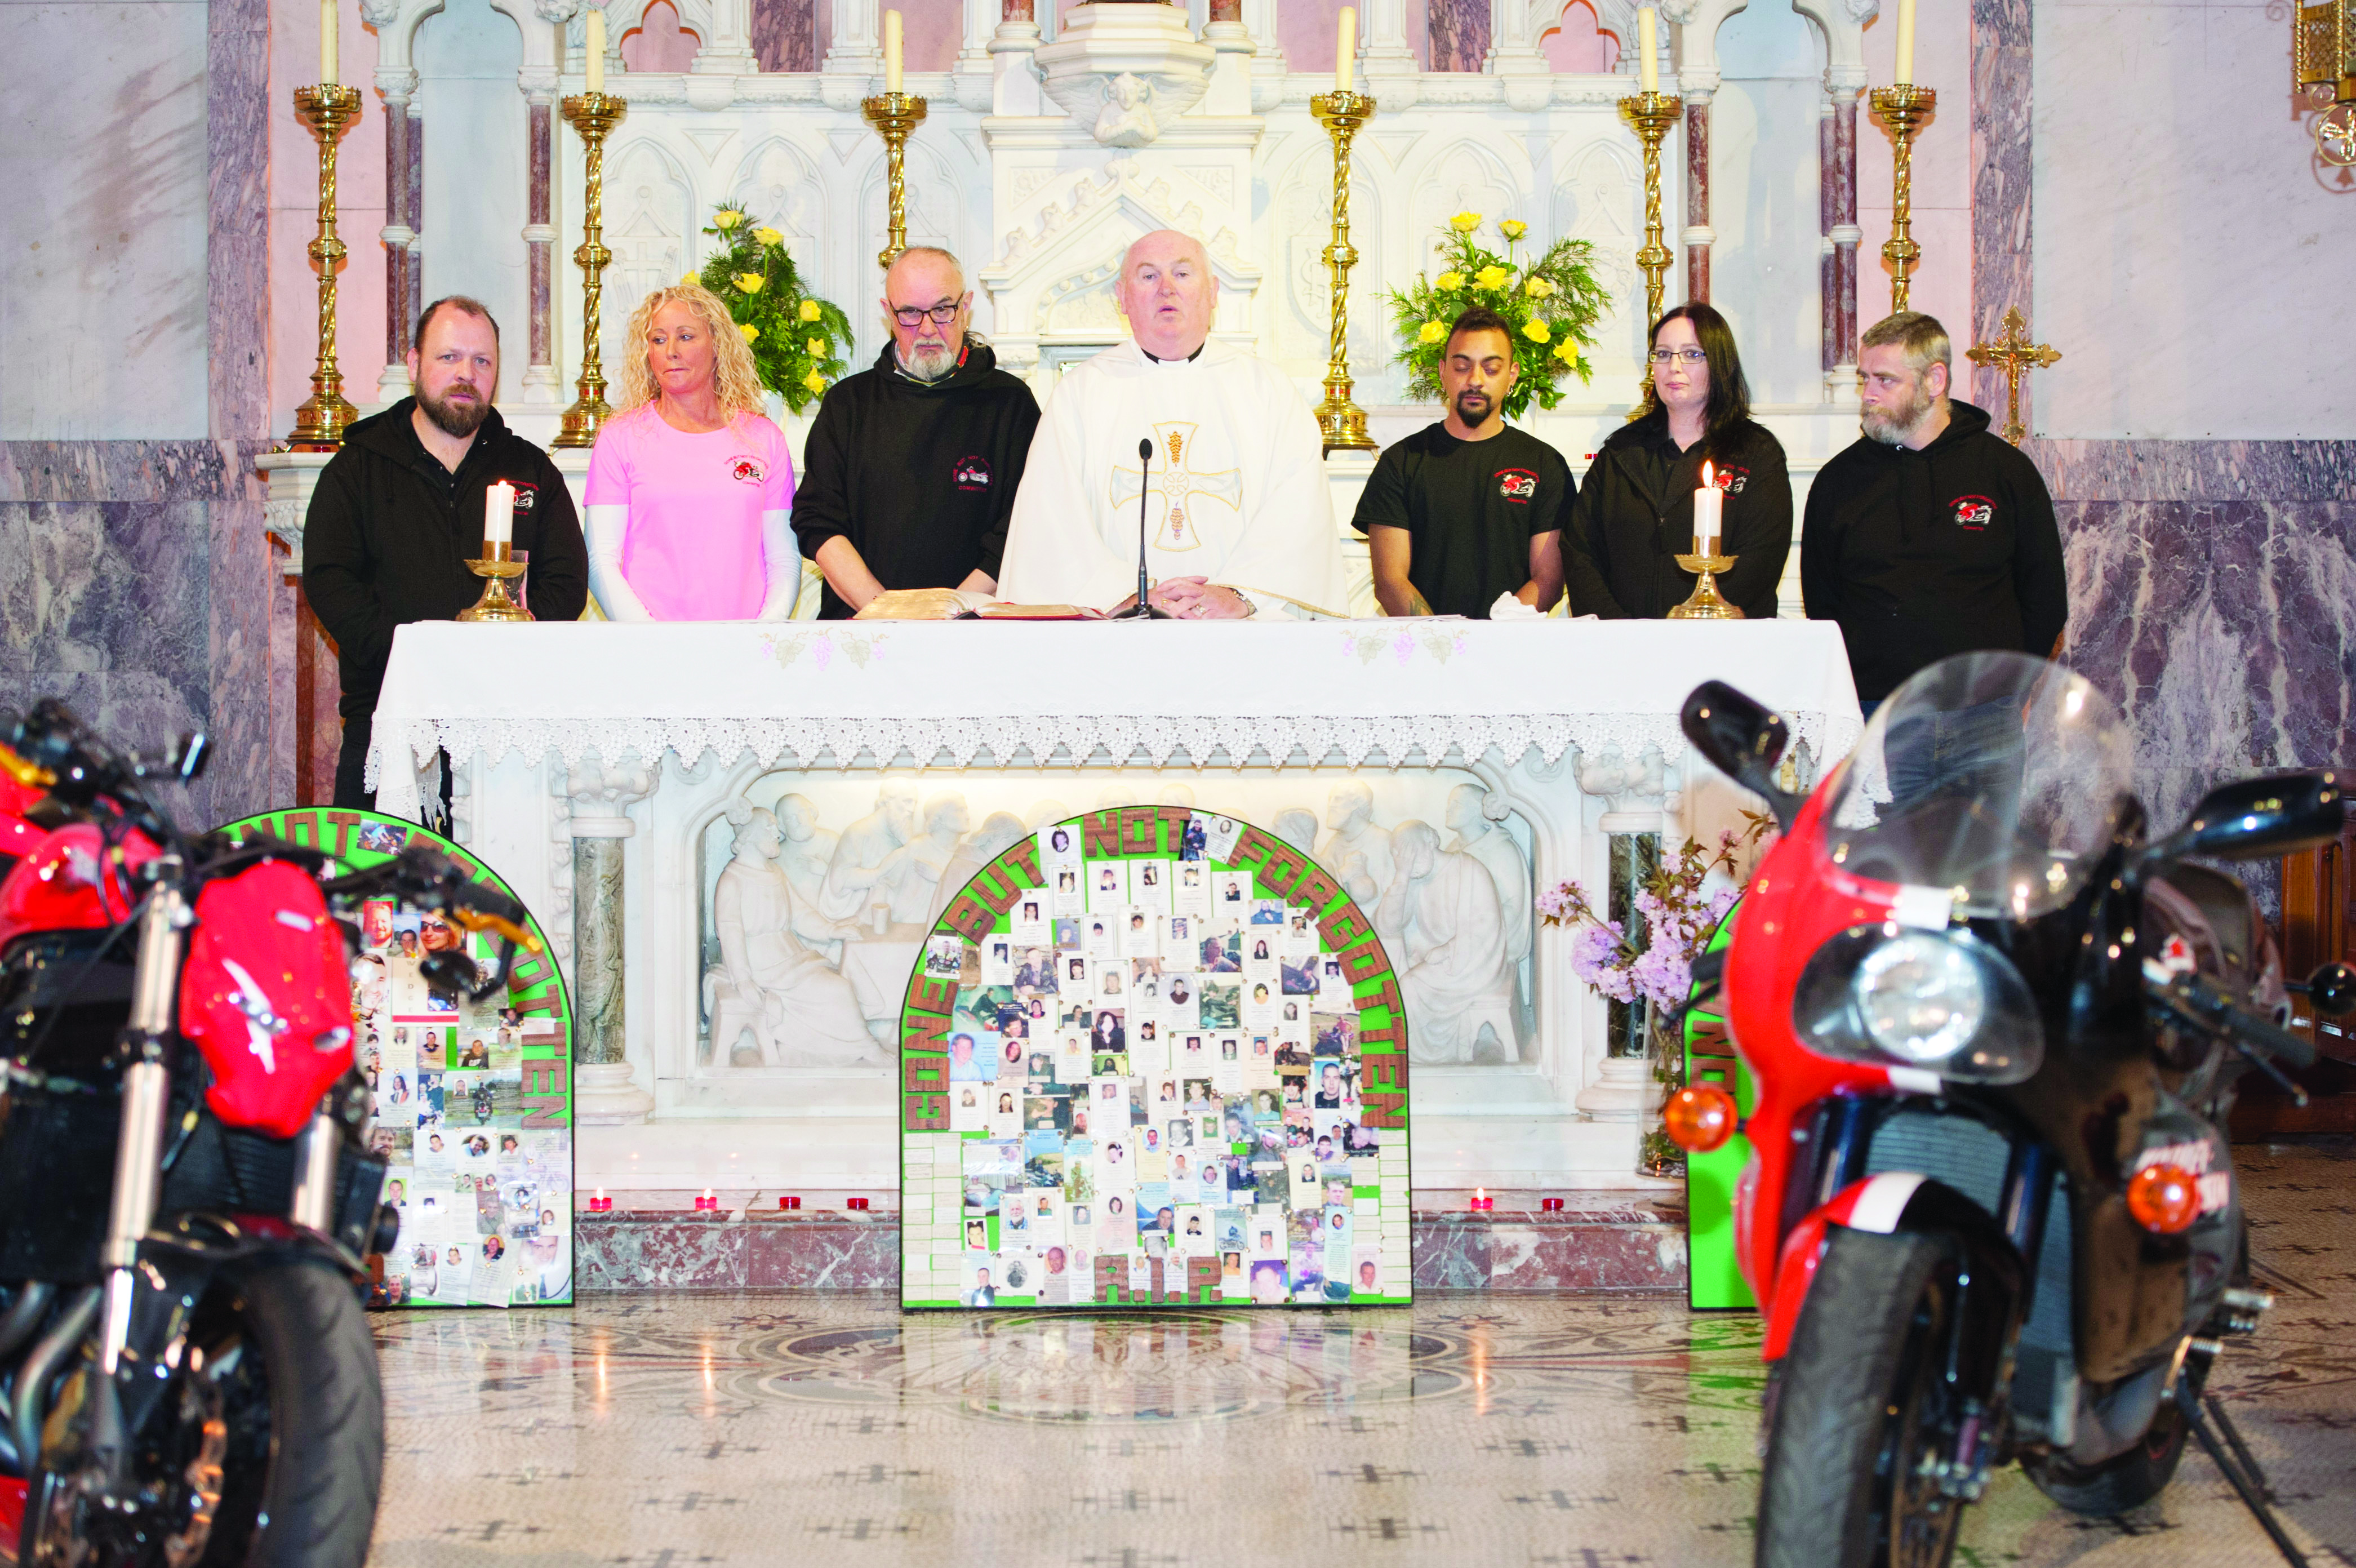 Some of the members of the committee of the Gone But Not Forgotten Bikers Mass on the alter with FR John Kierans were (L-R) Kieran Brennan, Teresa Boyle, Vinny West, Fr John Kierans, Jason Marshall, Ann Marie Marshall and Brian Mac Uaid. Missing from photo is John James McDonnell. ©Rory Geary/The Northern Standard